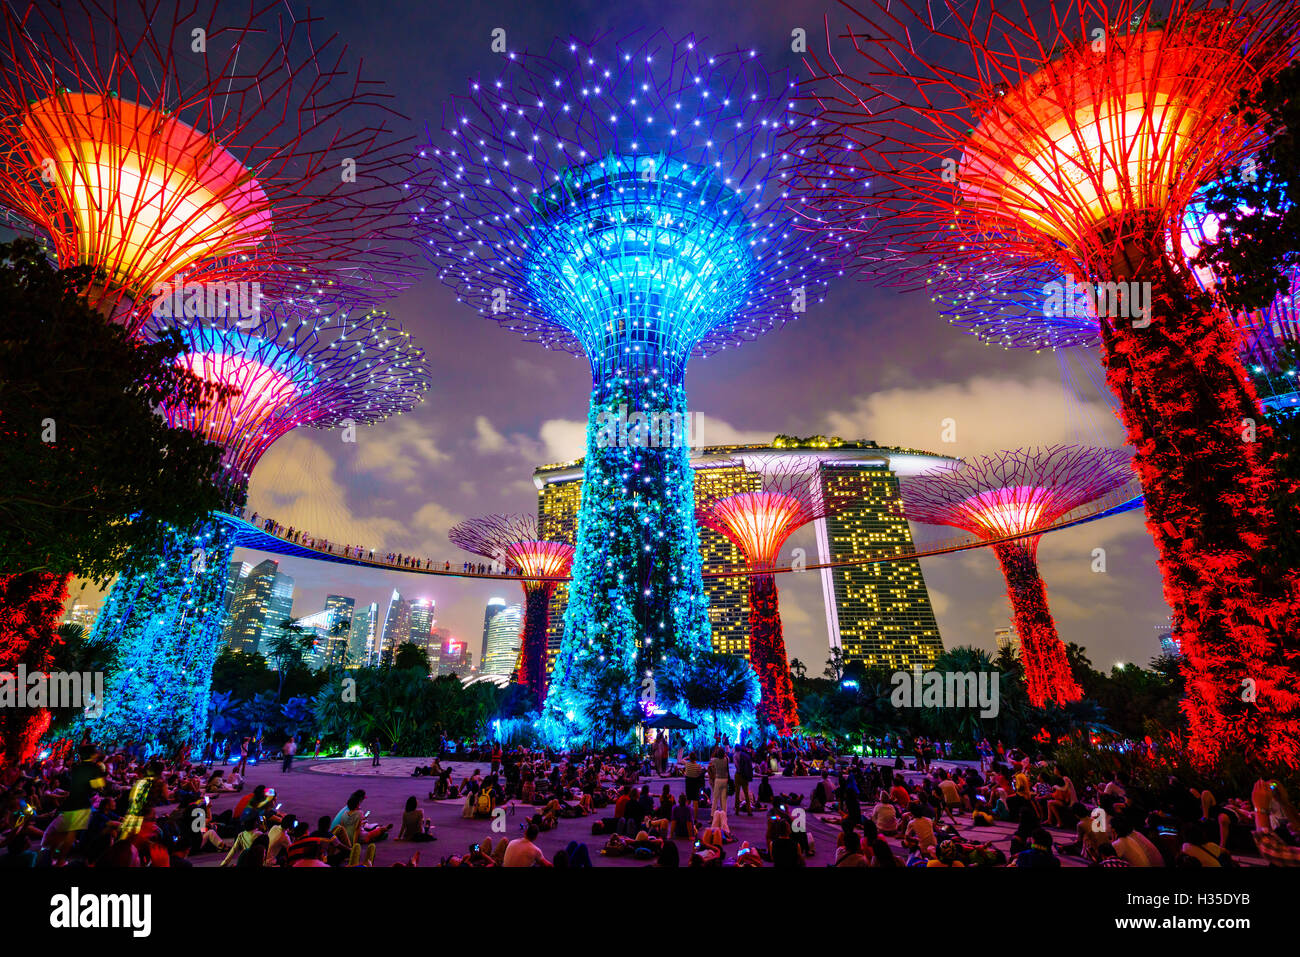 Supertree Grove In The Gardens By The Bay, A Futuristic Botanical Gardens  And Park, Illuminated At Night, Marina Bay, Singapore